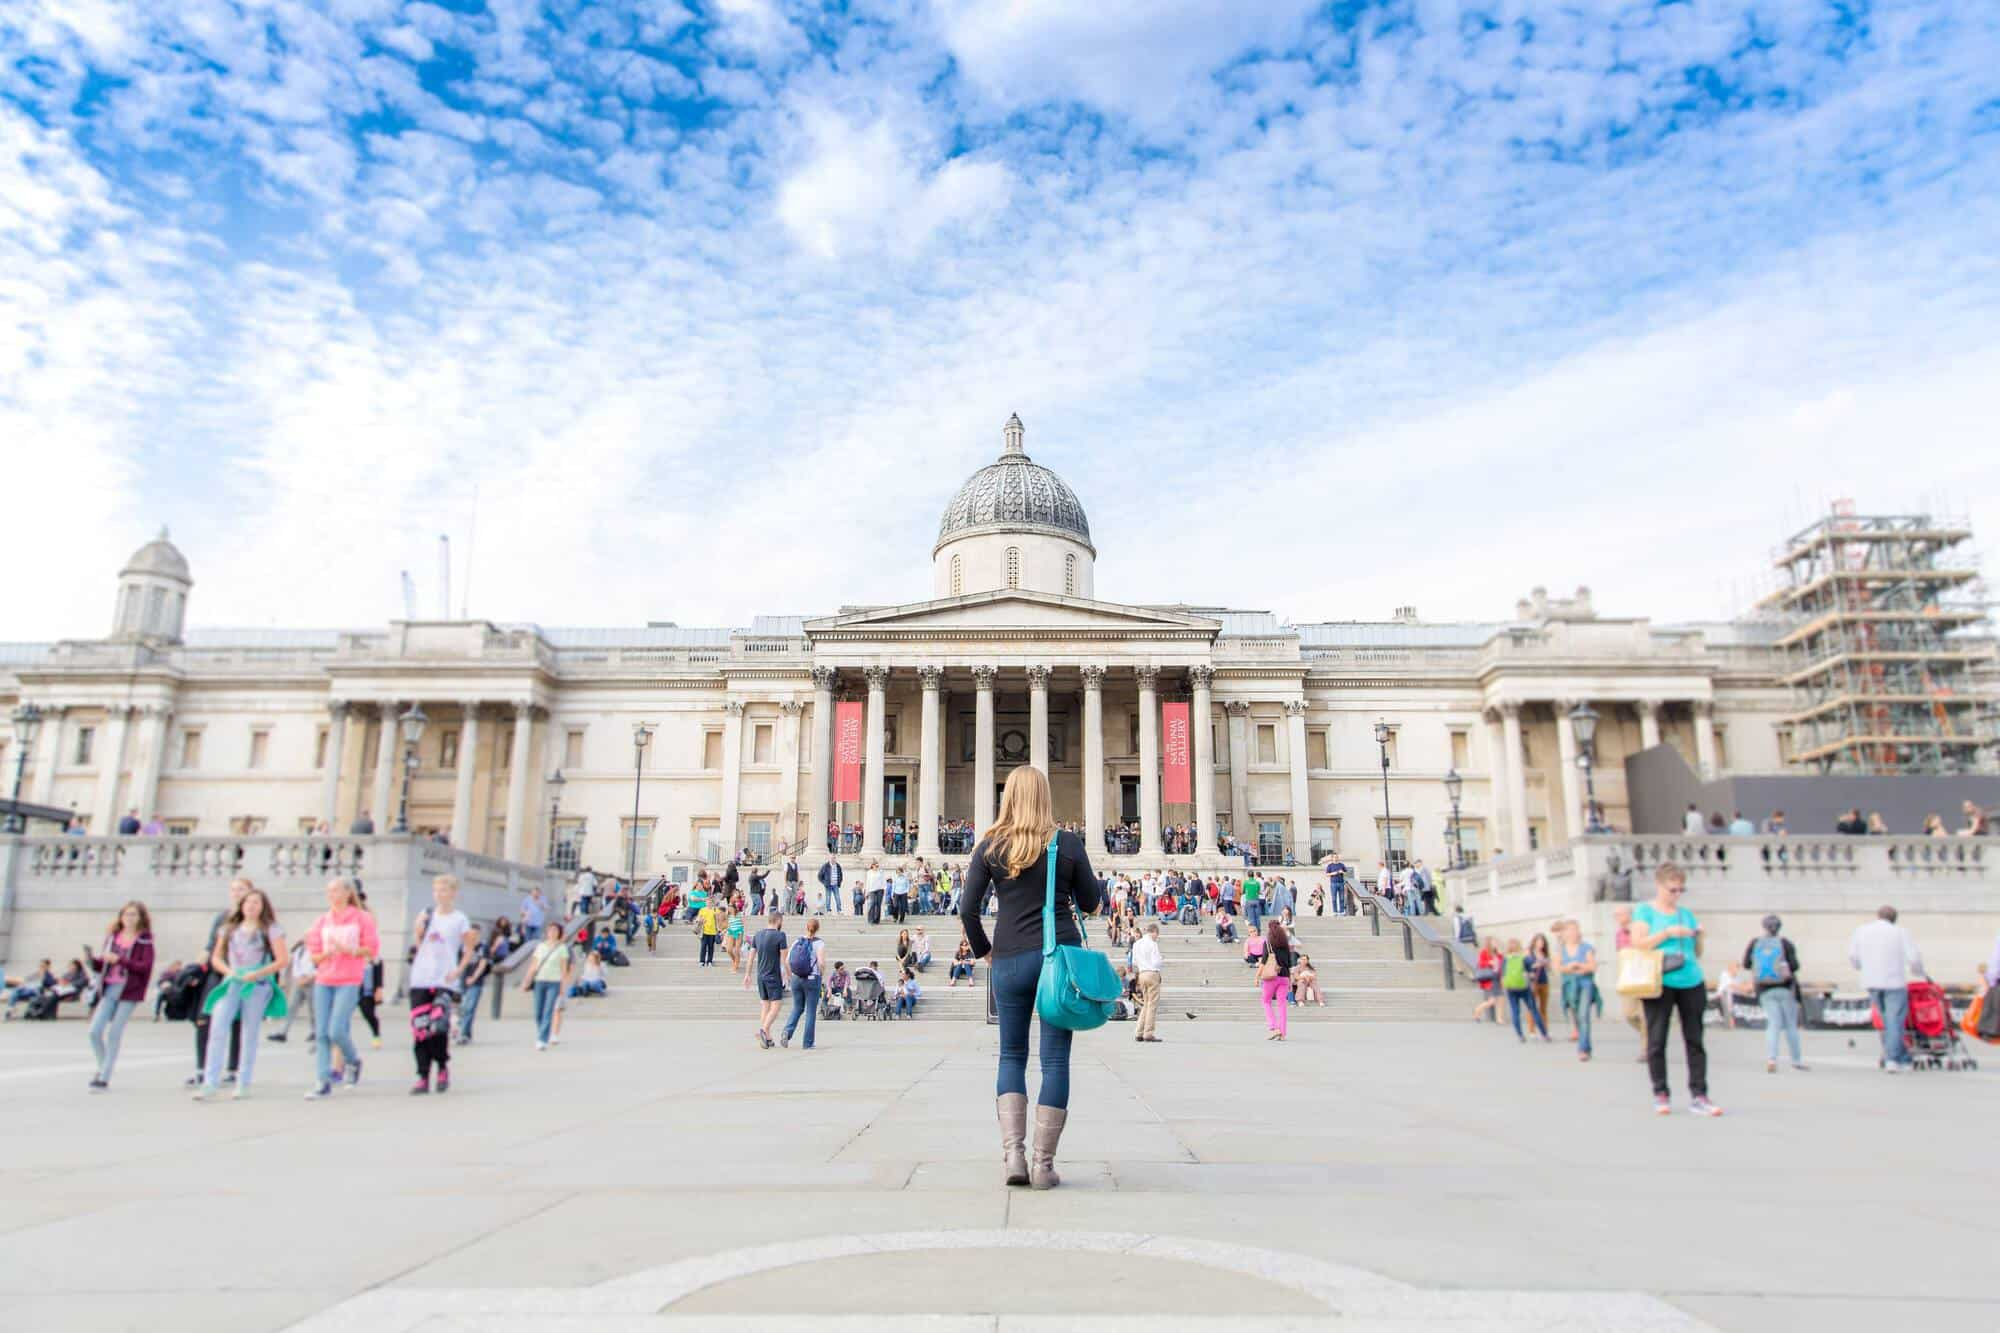 Abigail King stood in London England outside the National Gallery